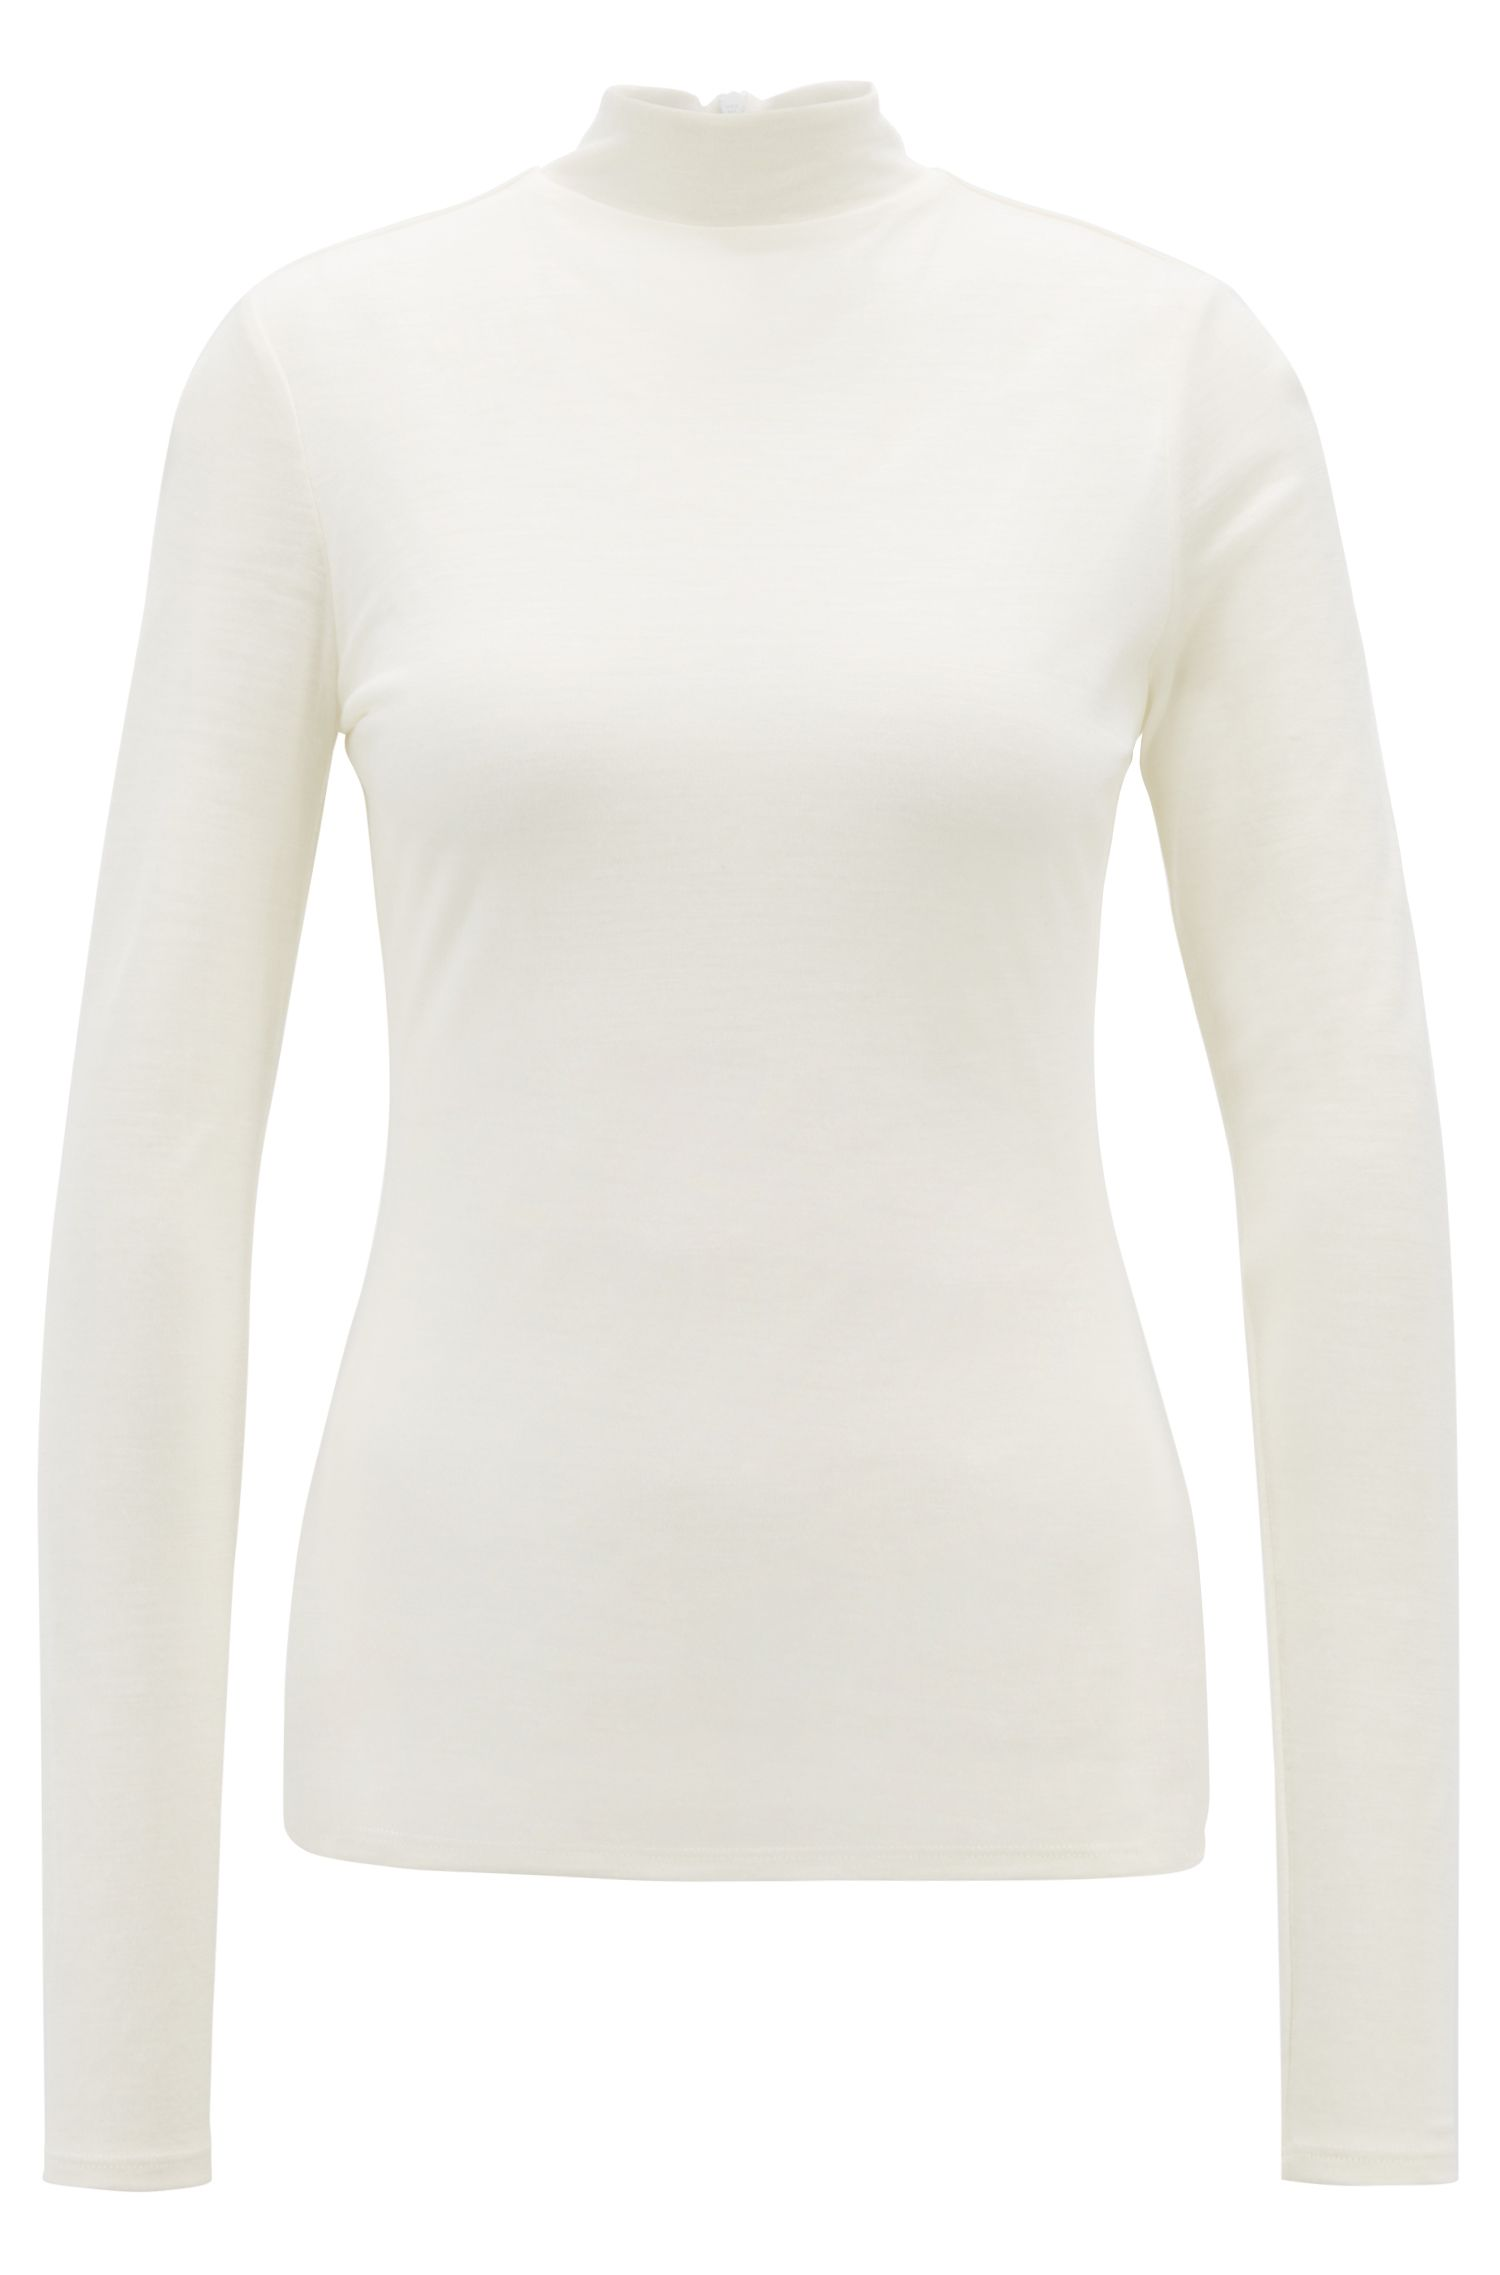 Turtleneck top in lightweight fabric with lined body